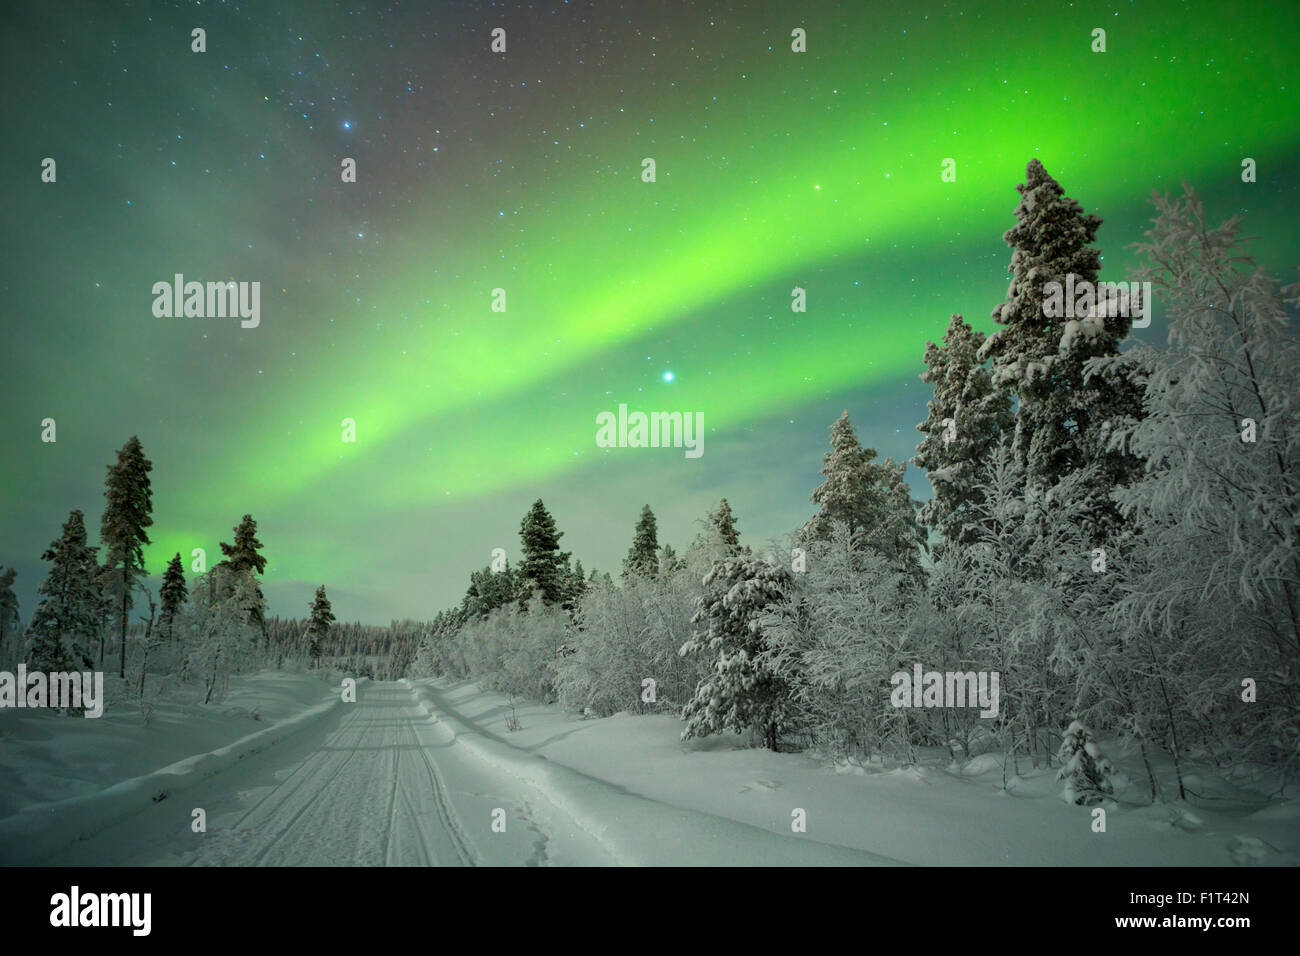 Spectacular aurora borealis (northern lights) over a track through winter landscape in Finnish Lapland. - Stock Image